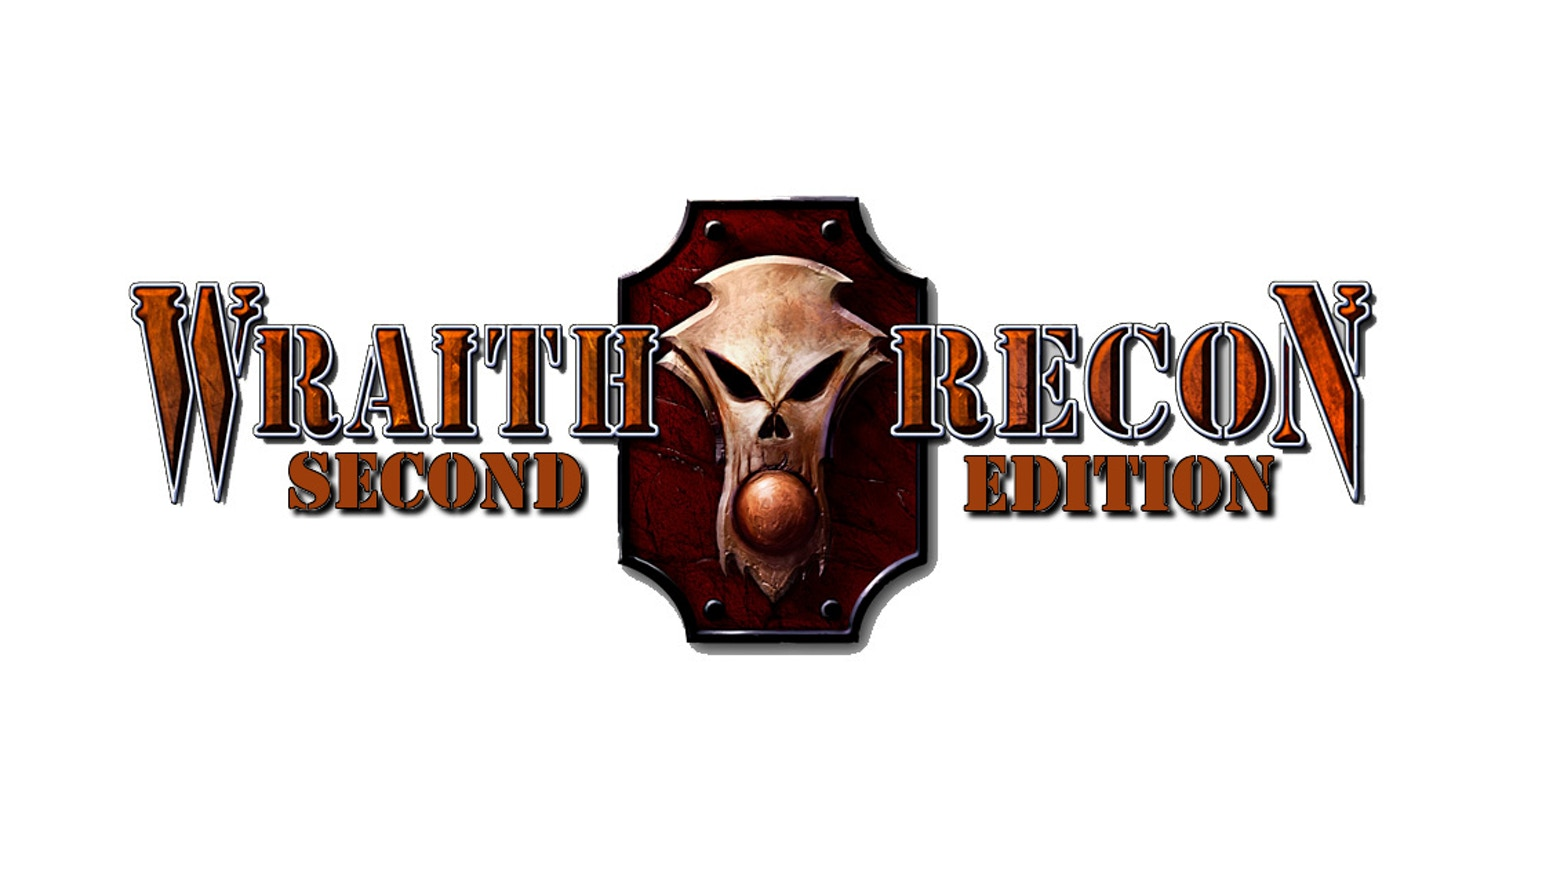 You are a member of Wraith Recon - trained in covert operations to protect the people of Dardarrick against threats.